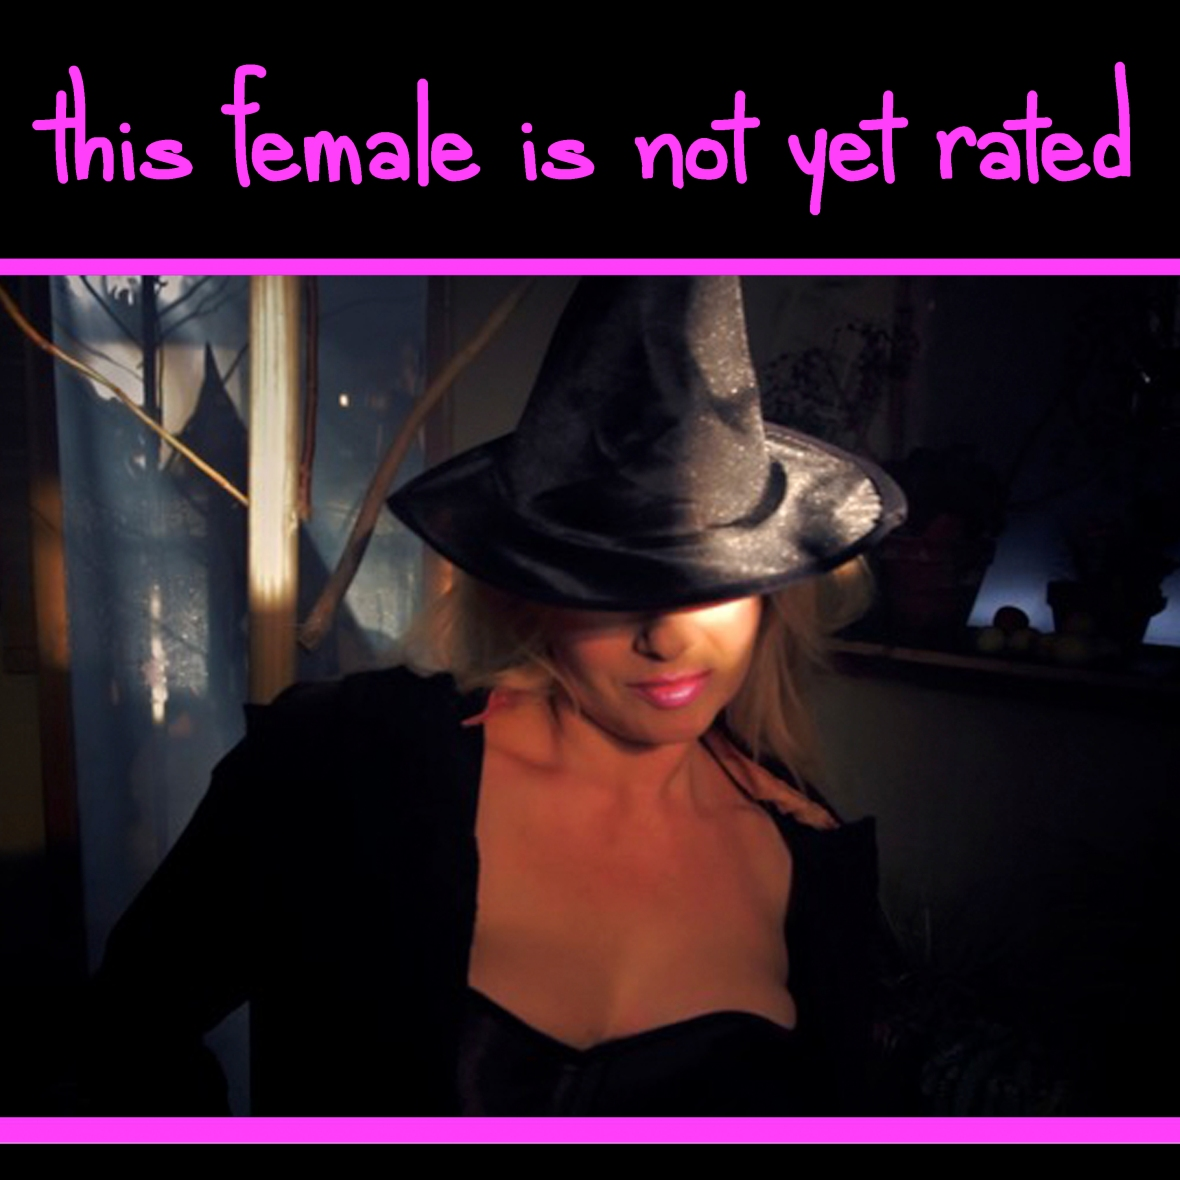 this_female_is_not_yet_rated